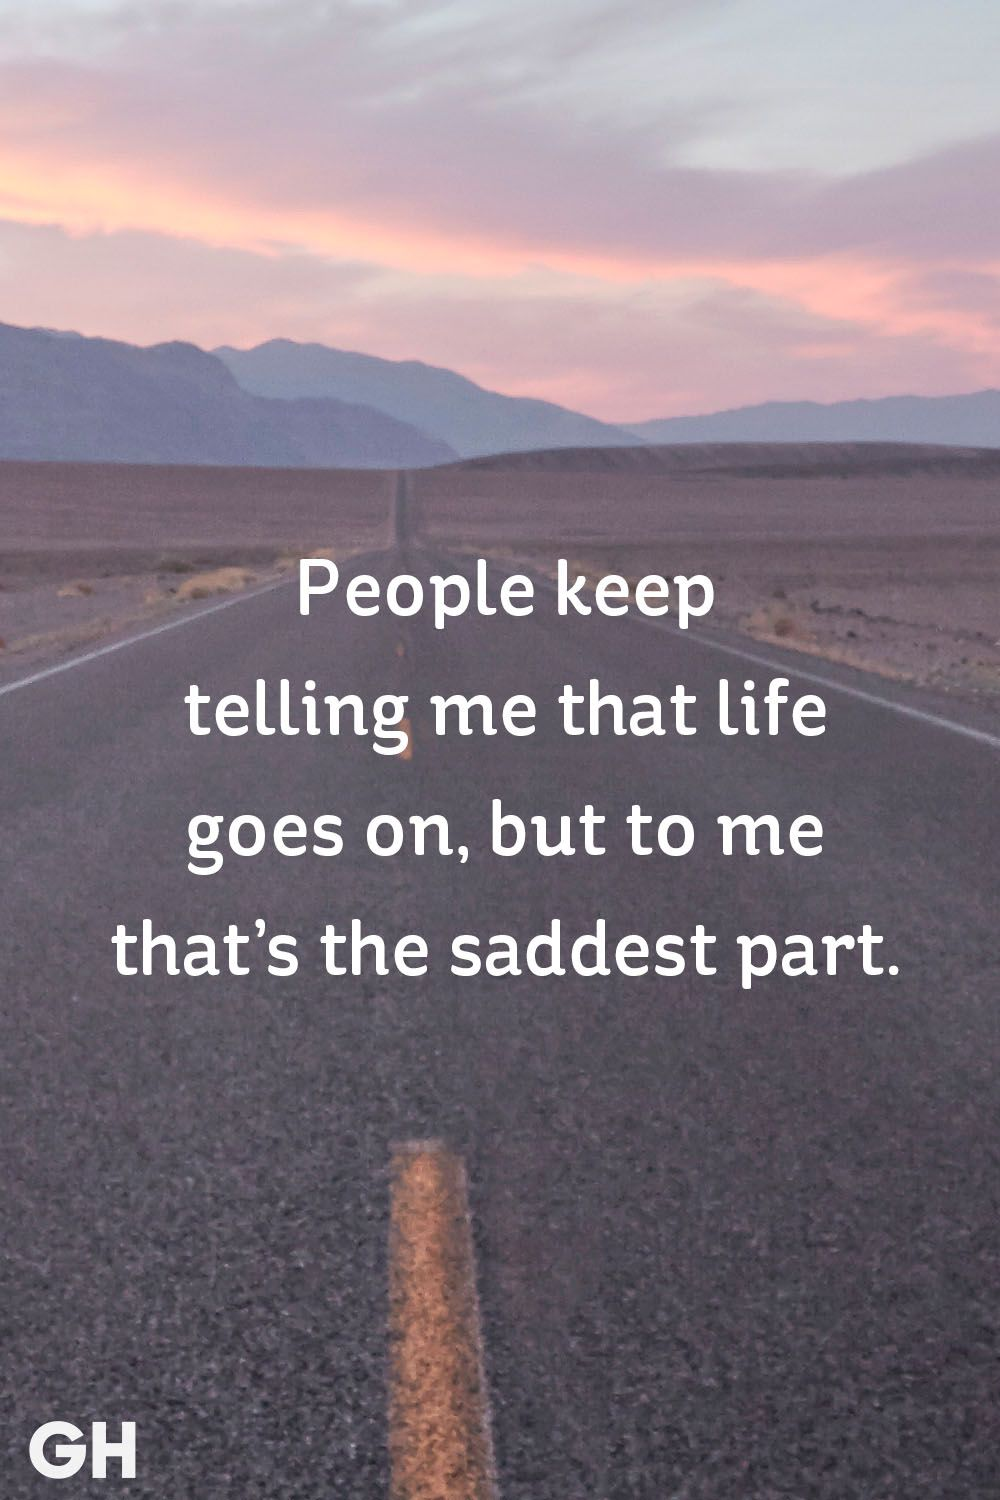 Image of: Heart Good Housekeeping 16 Best Sad Quotes Quotes Sayings About Sadness And Tough Times